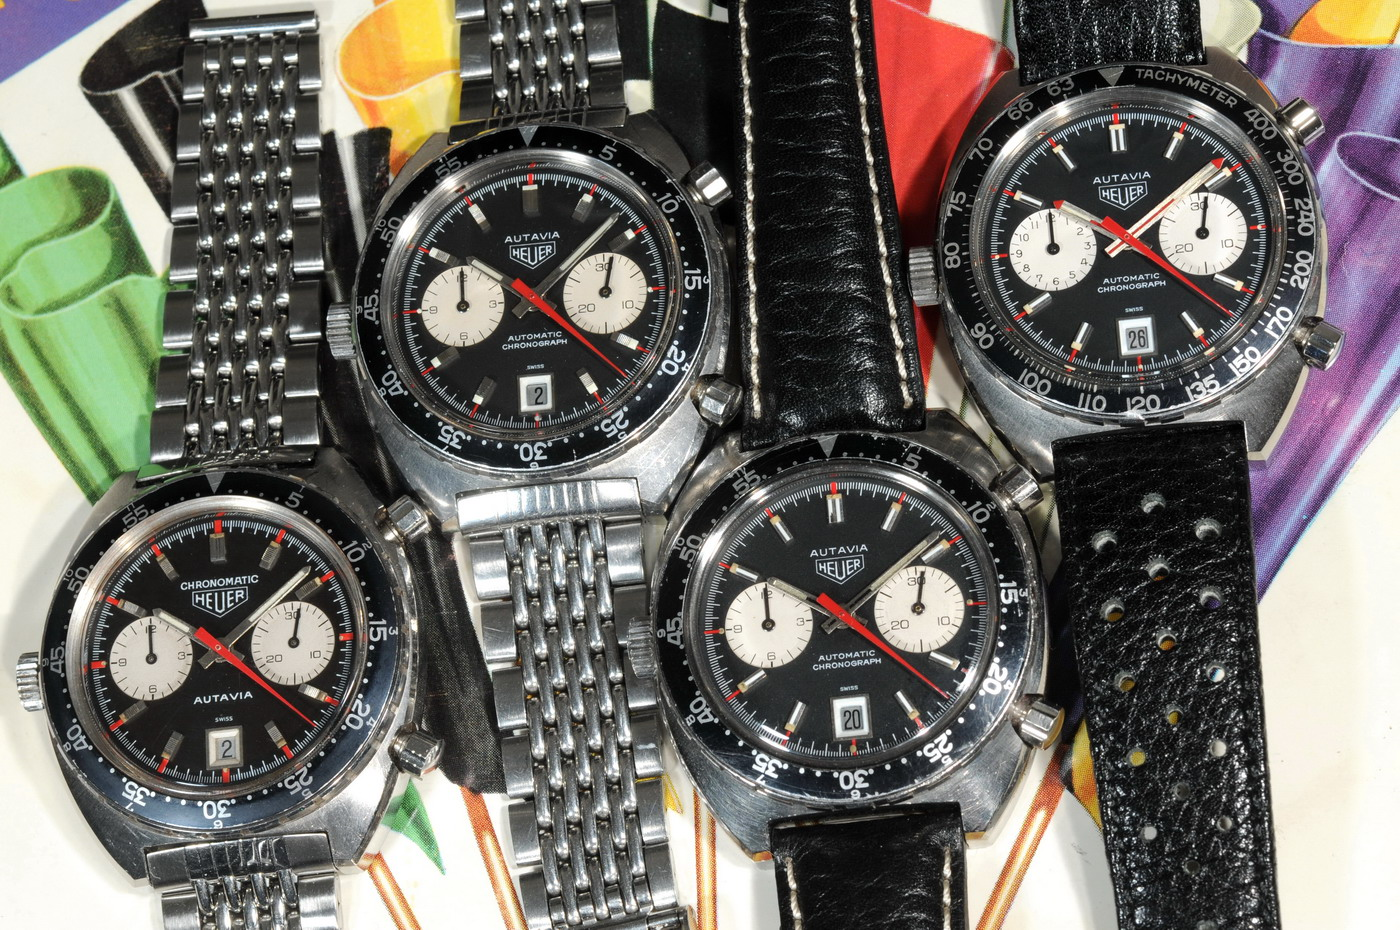 Four Reference 1163 Black Autavias